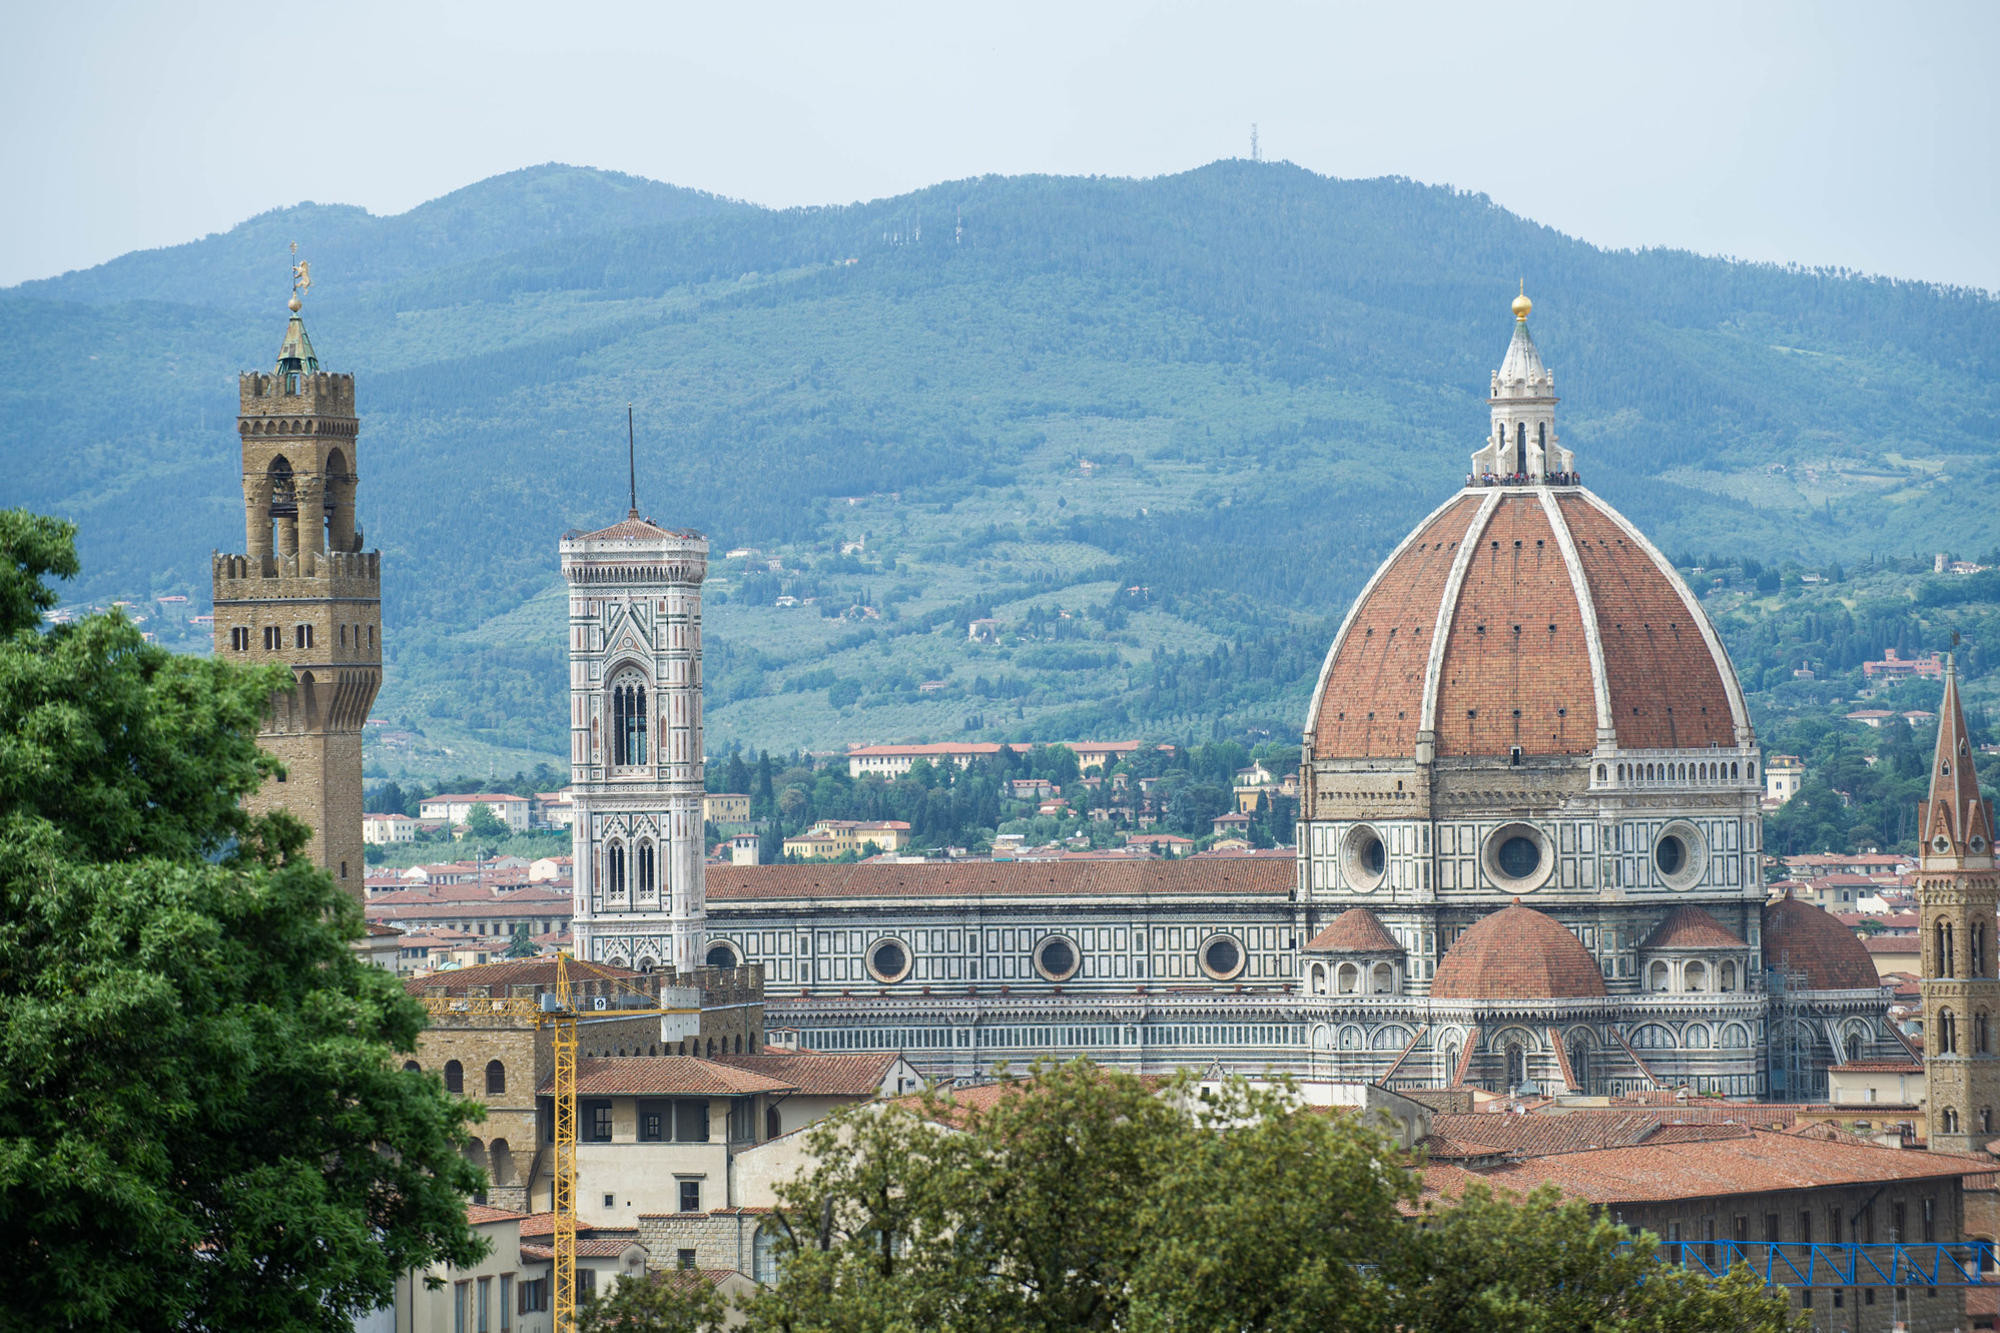 The dome and campanile of the Duomo in Florence, with Tuscan hills in the background.